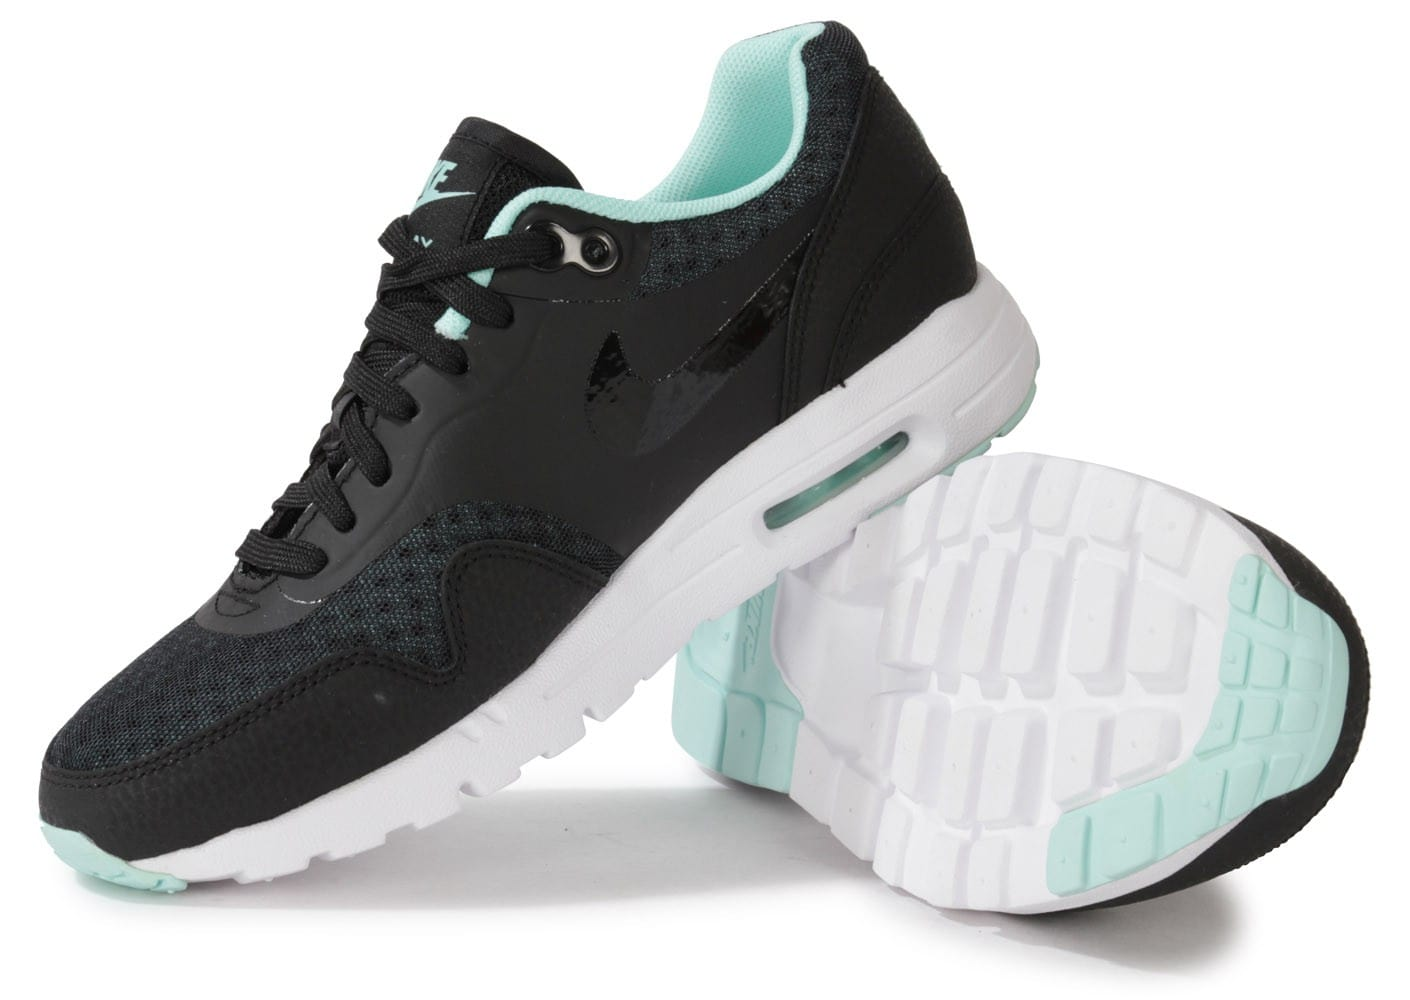 nike air max ultra essential femme nike shox r5 energia. Black Bedroom Furniture Sets. Home Design Ideas